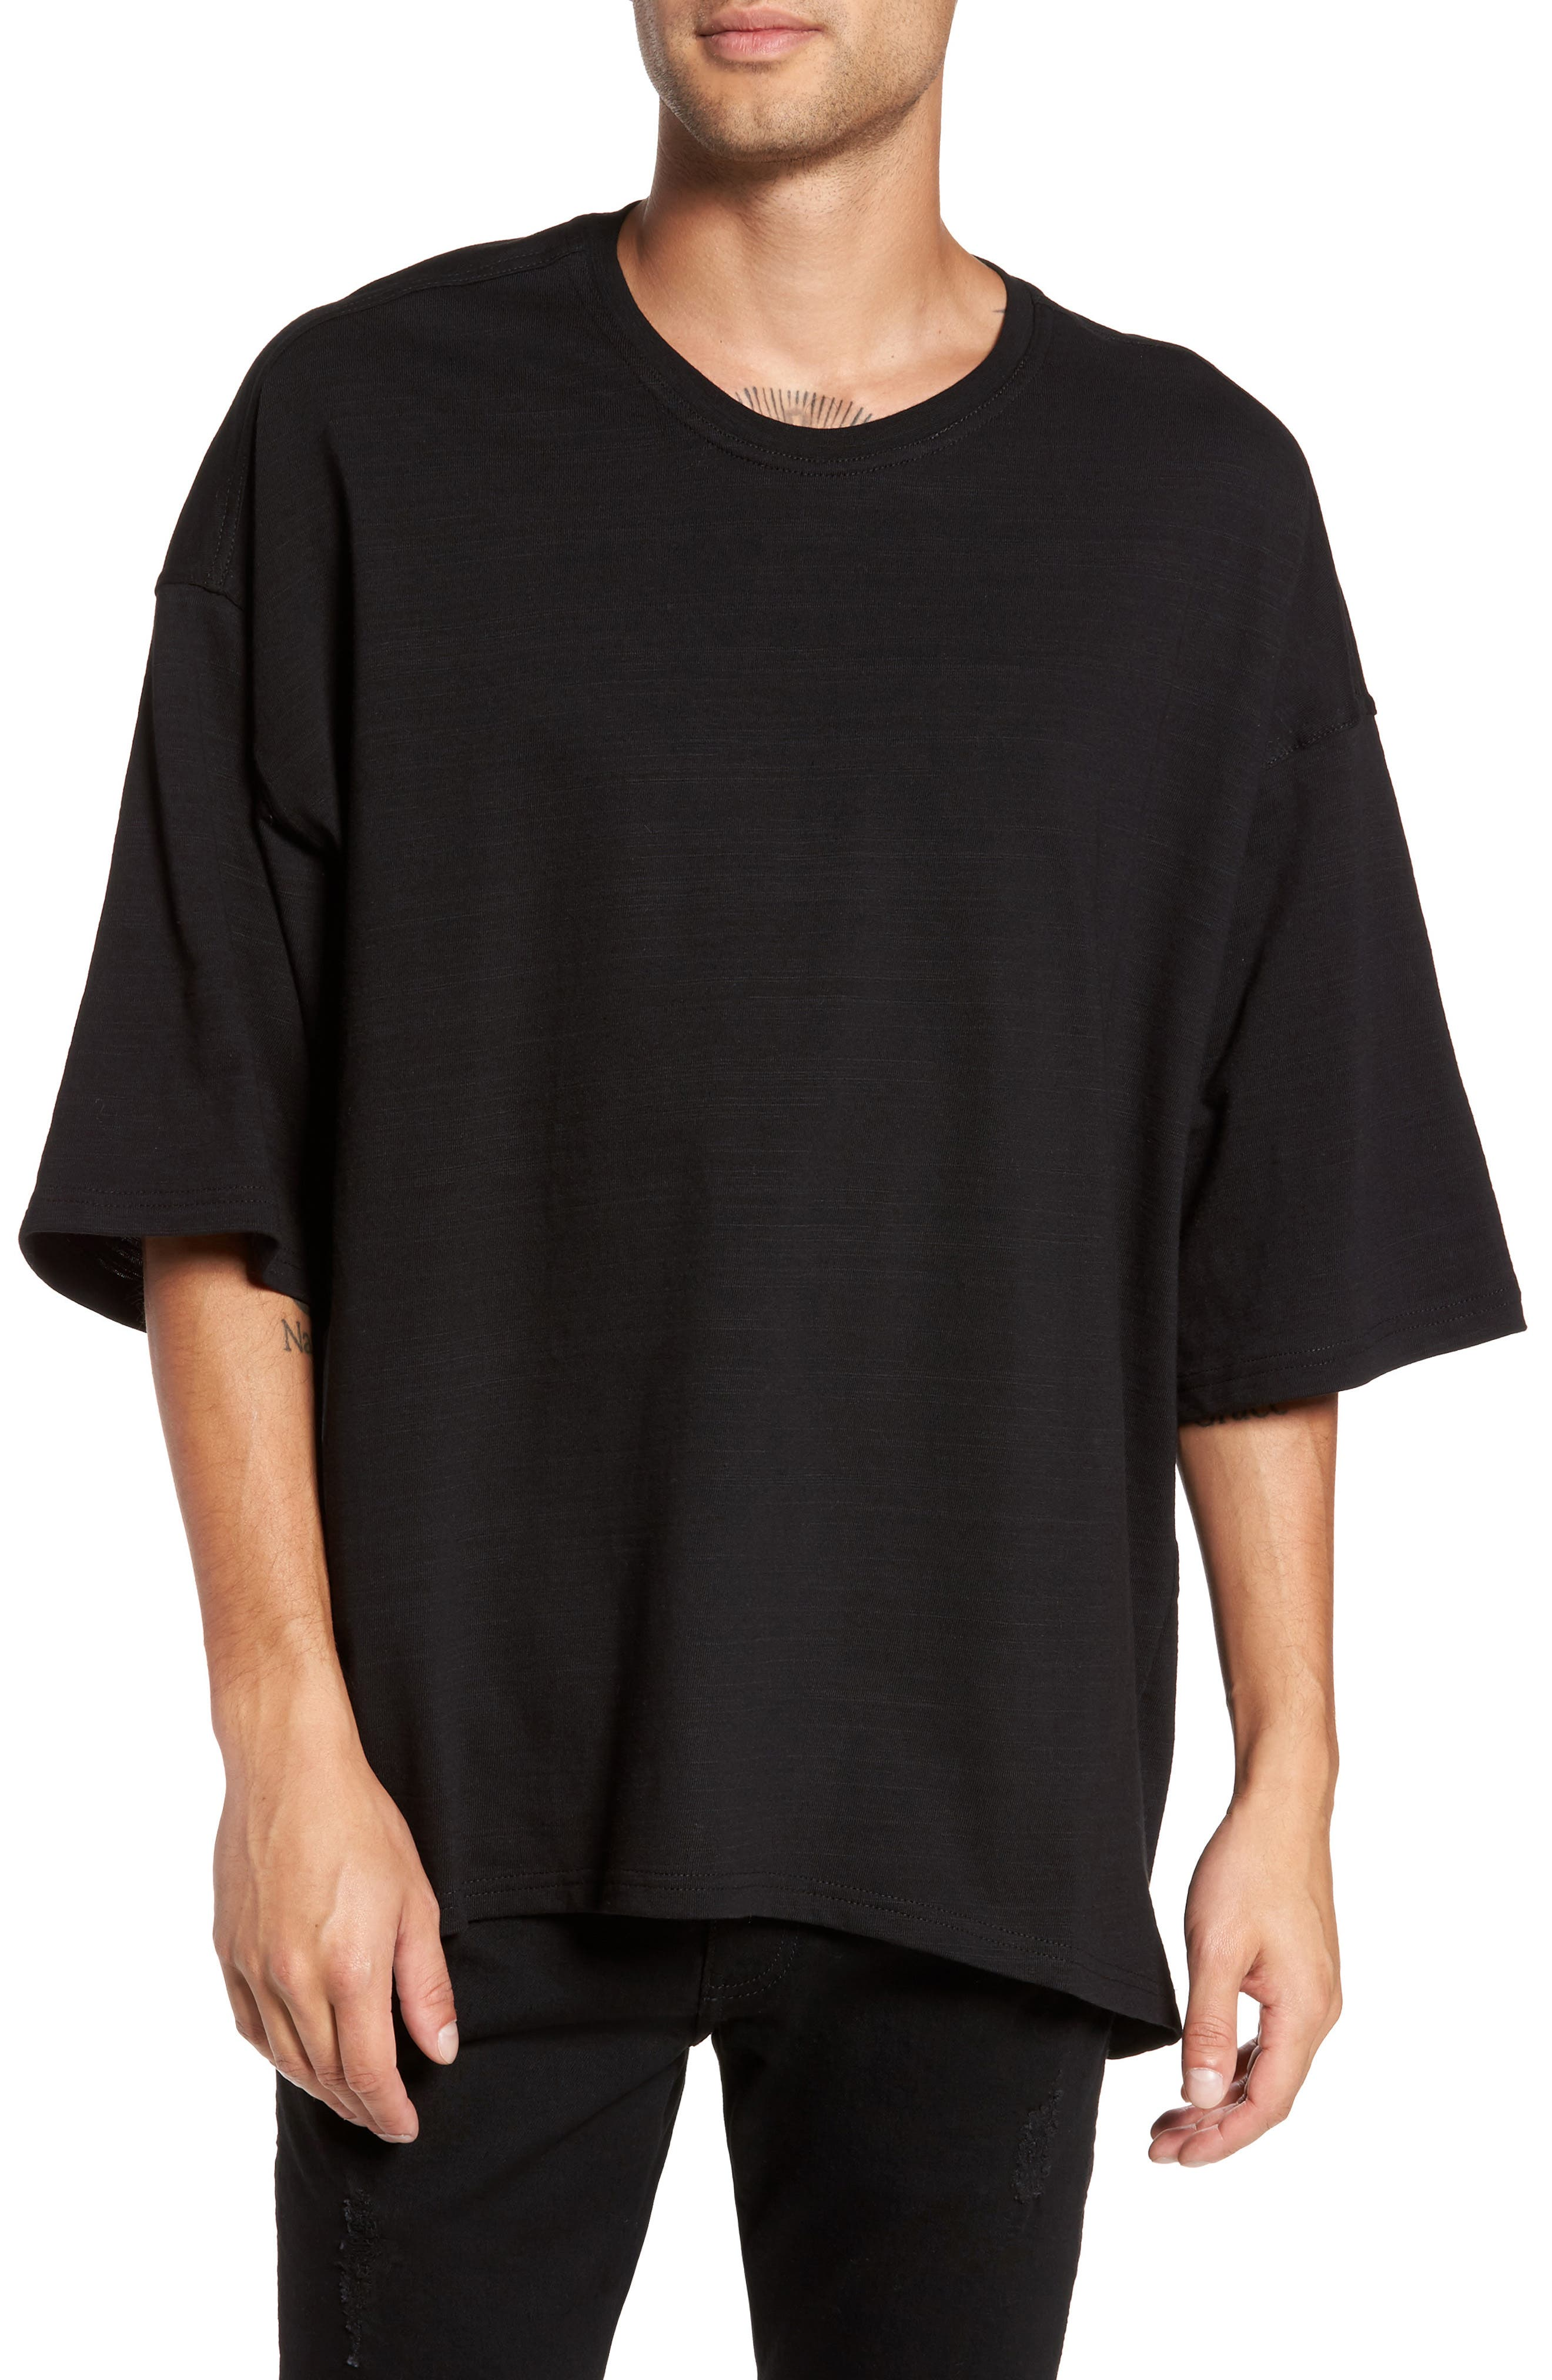 Main Image - Represent Relaxed Fit Crewneck T-Shirt